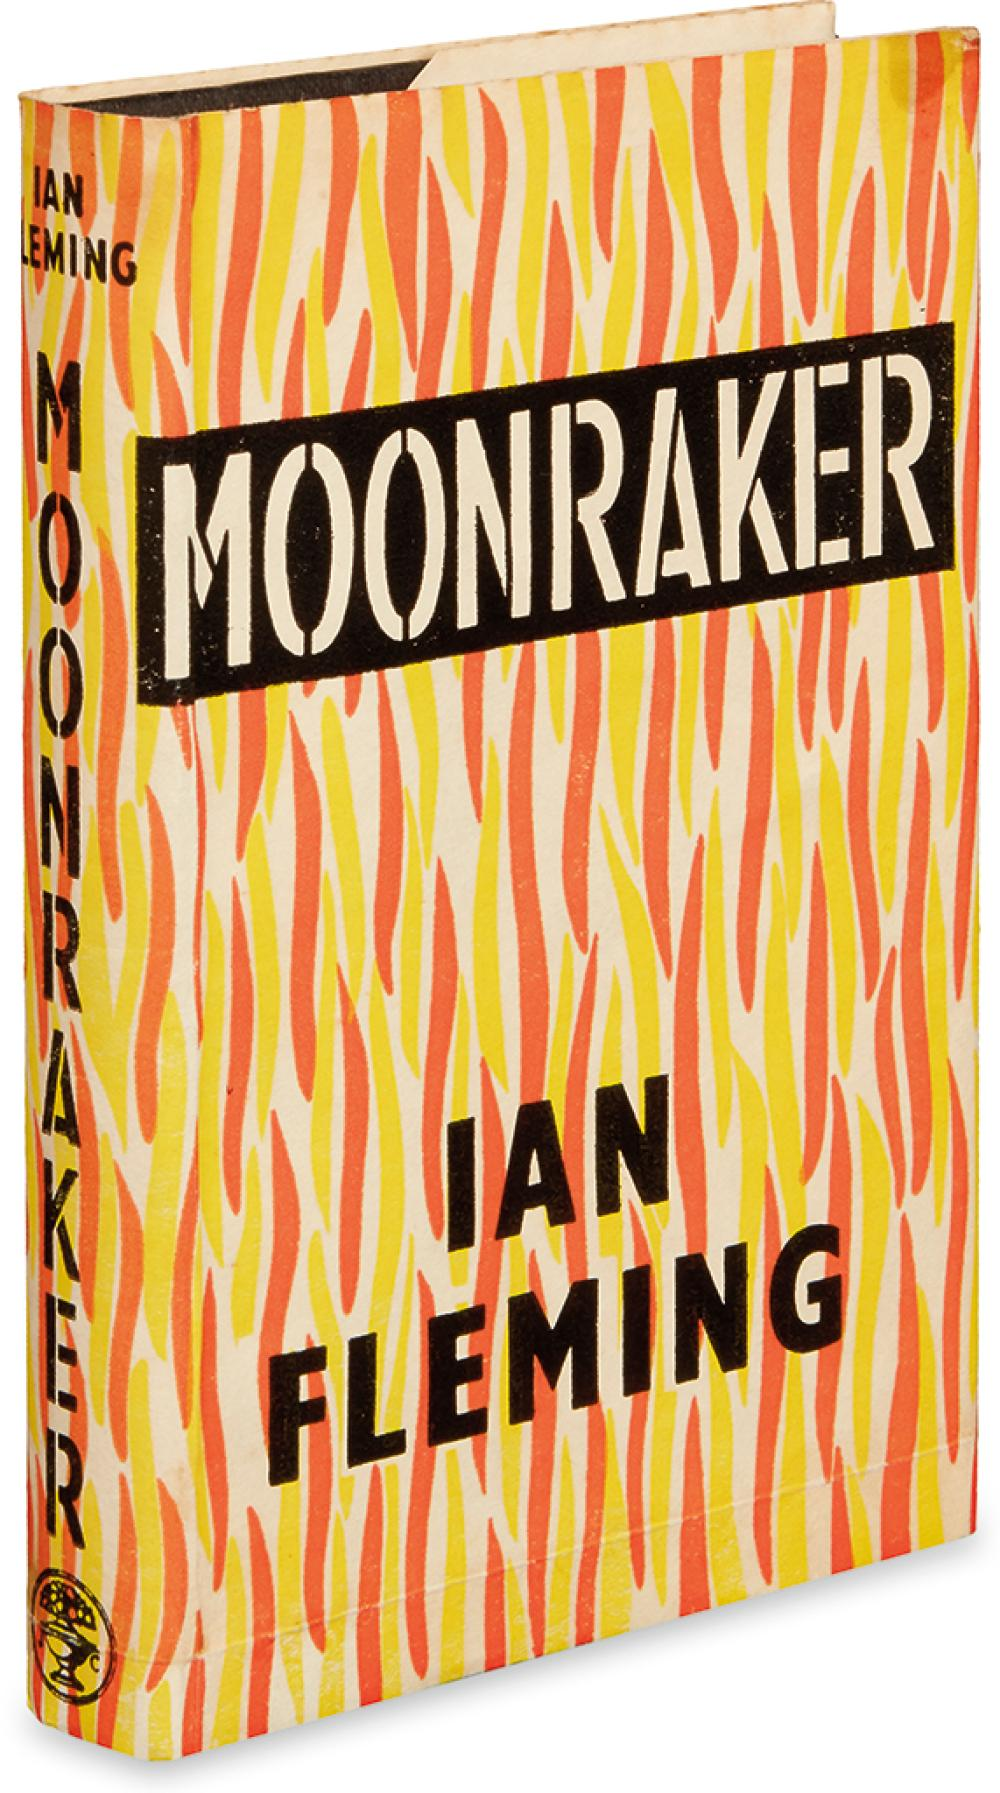 FLEMING, IAN. Moonraker.